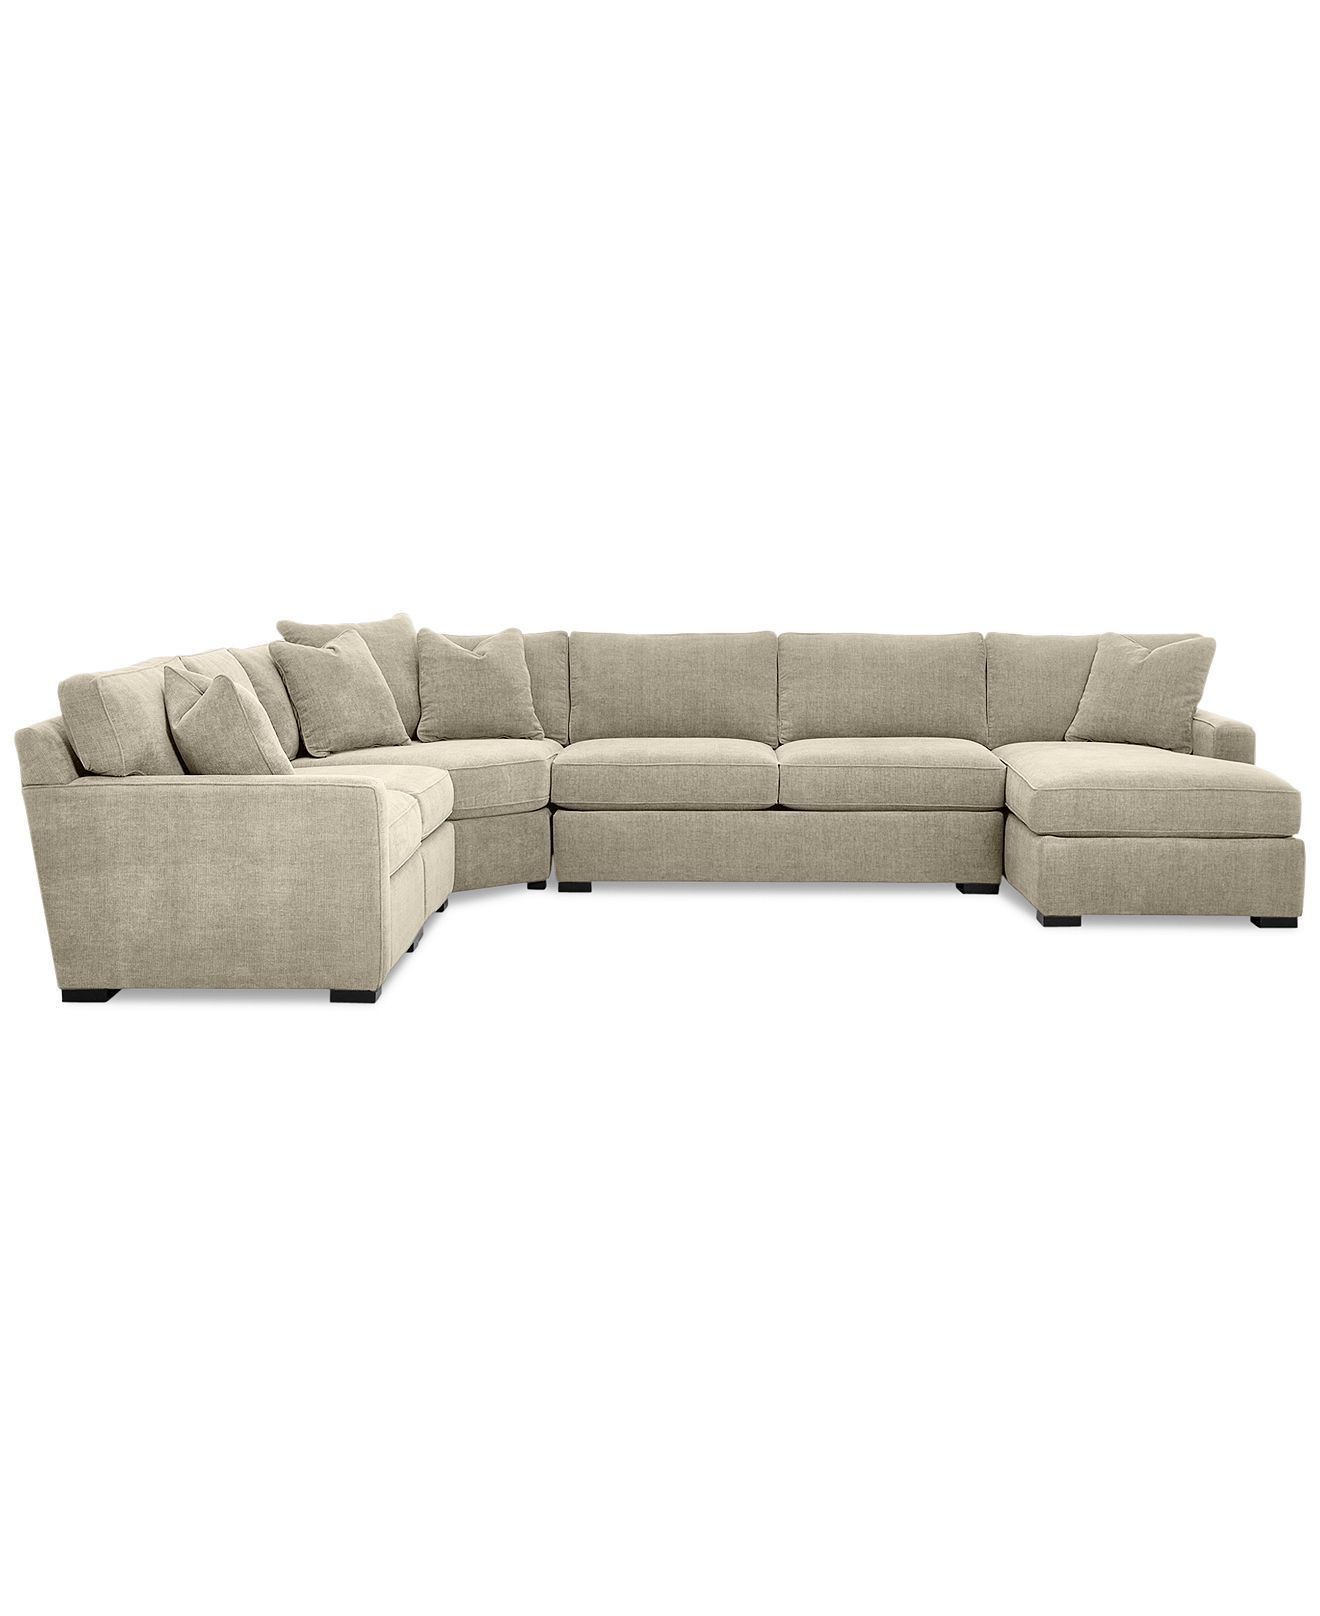 Radley 5 Piece Fabric Modular Sectional Sofa Furniture Macy s